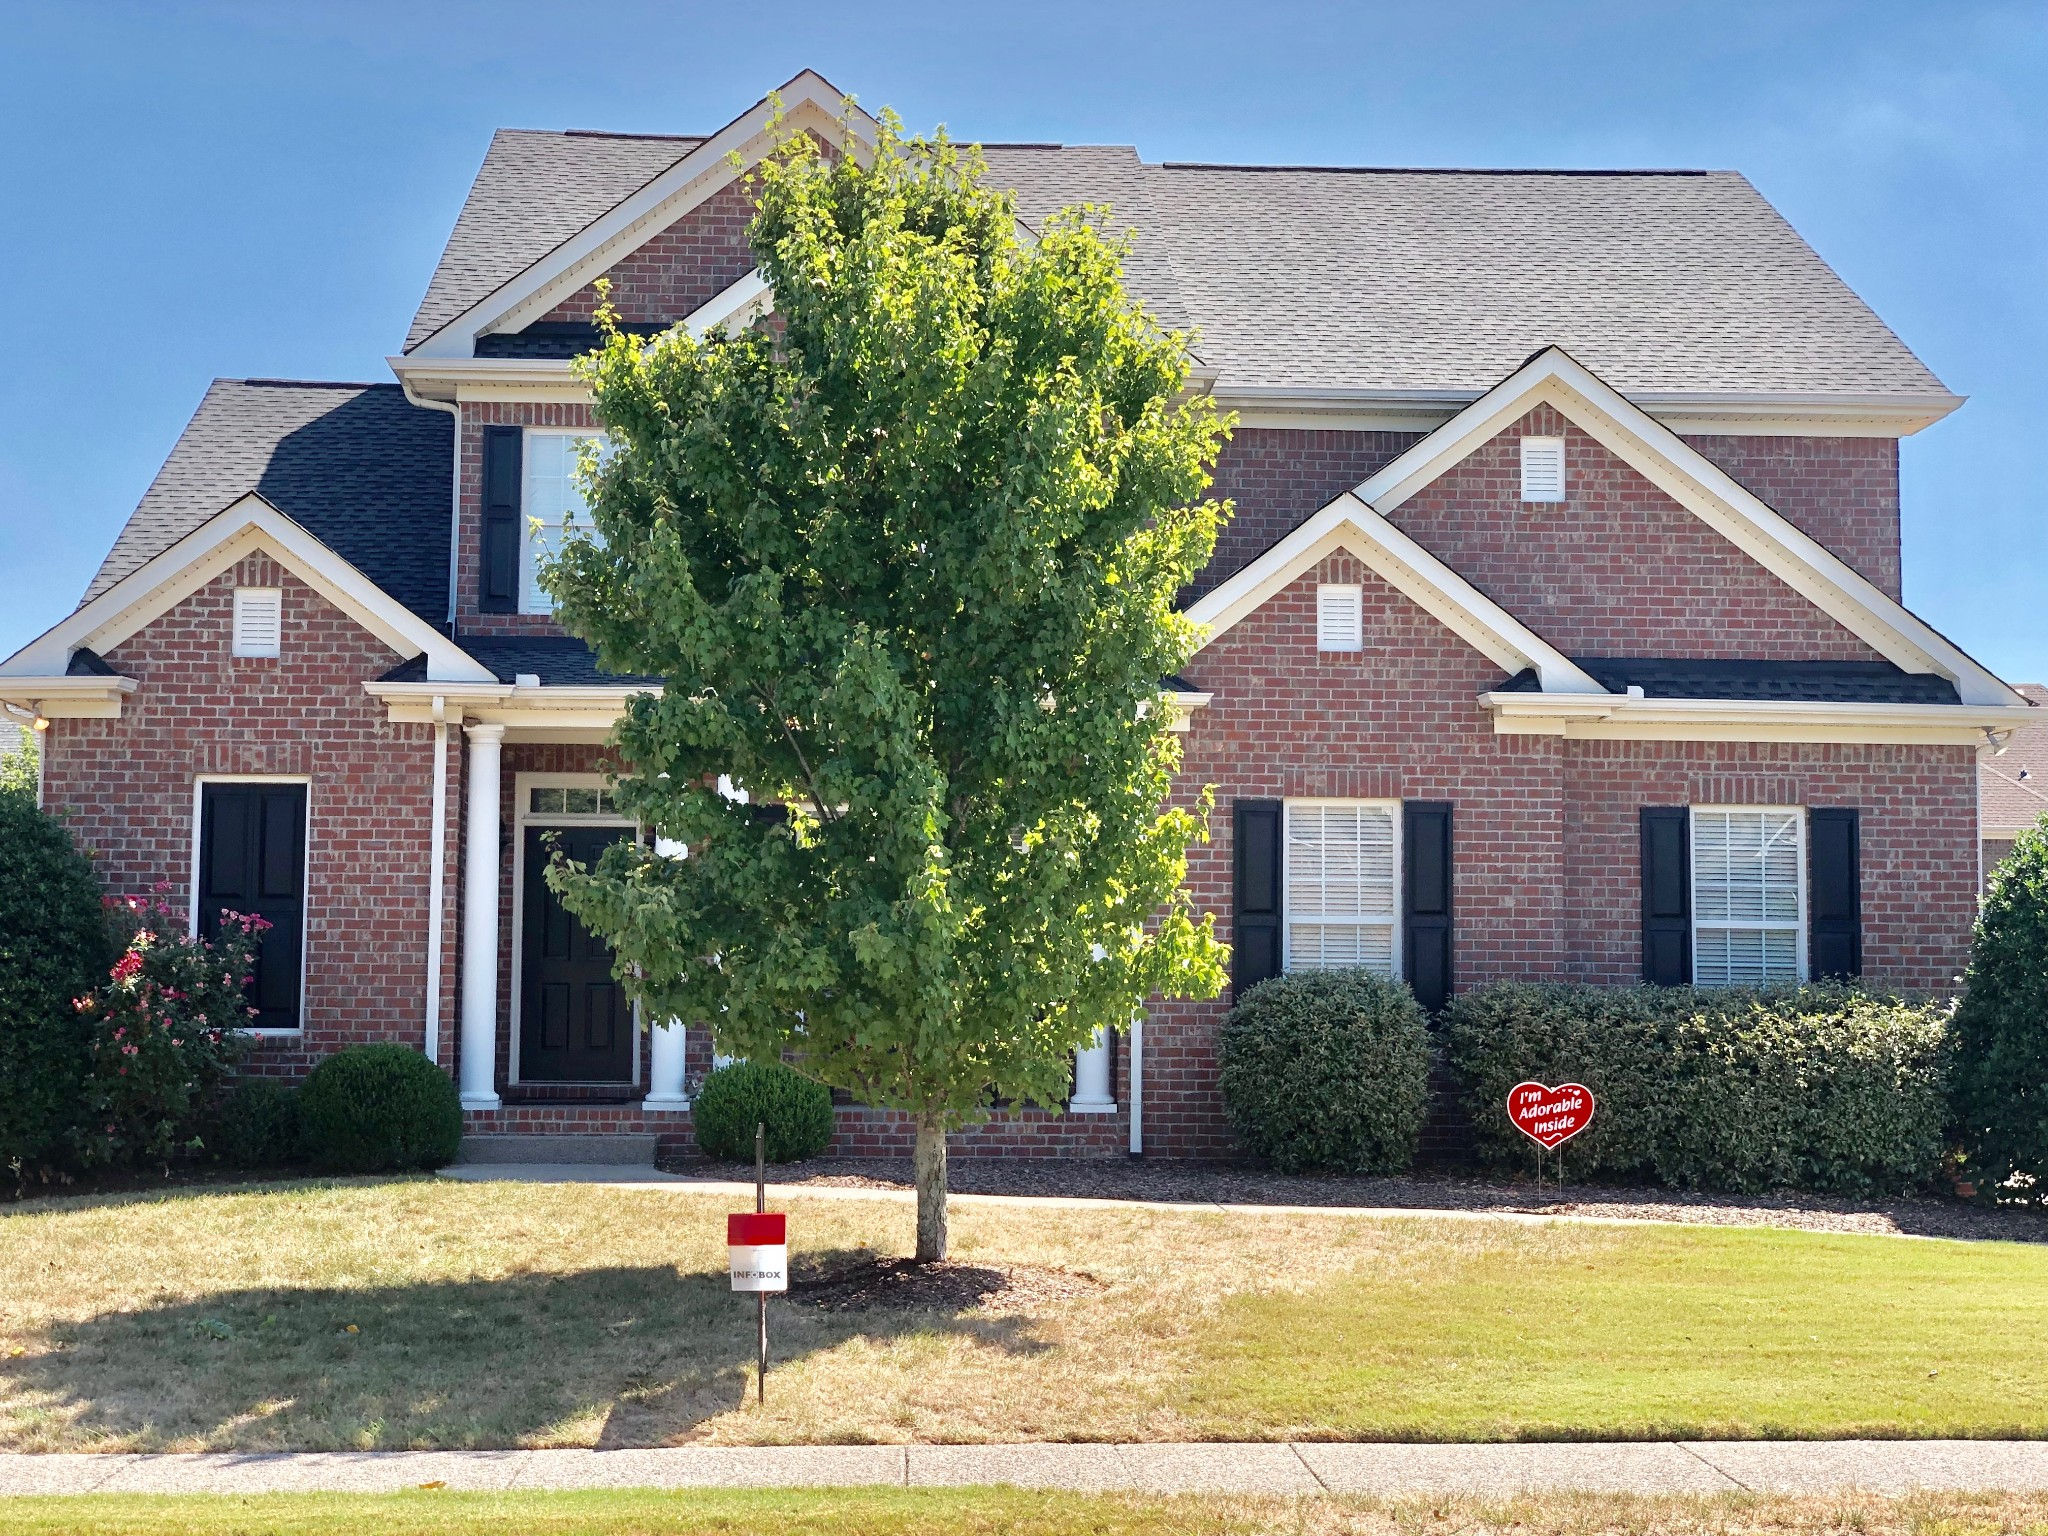 1013 Brixworth Dr, Thompsons Station, TN 37179 - Thompsons Station, TN real estate listing